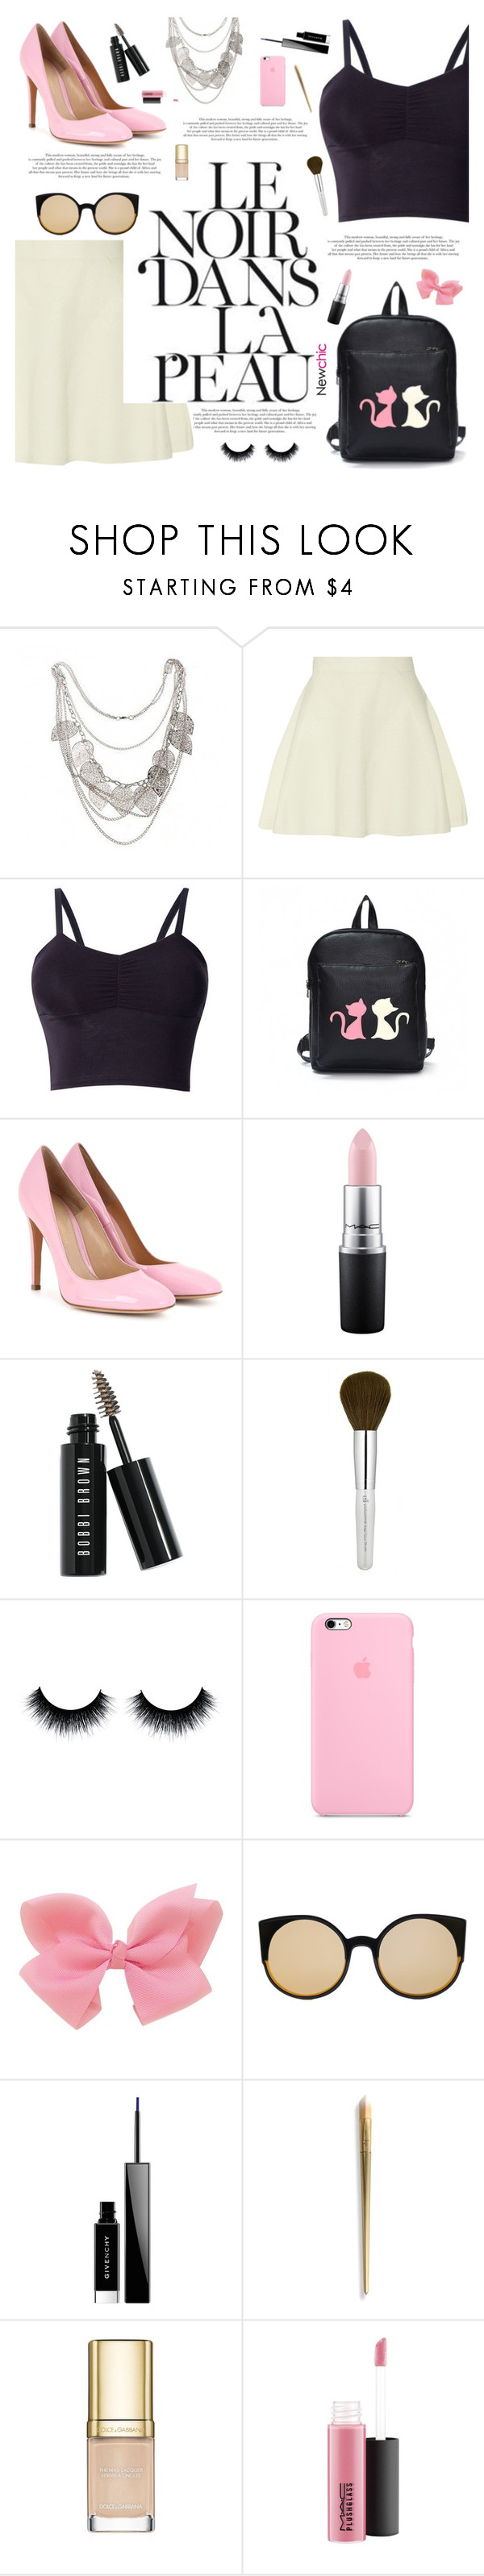 """Lovenewchic #26"" by katarinamm ❤ liked on Polyvore featuring 3.1 Phillip Lim, Gianvito Rossi, MAC Cosmetics, Bobbi Brown Cosmetics, RetroSuperFuture, Givenchy and Dolce&Gabbana"